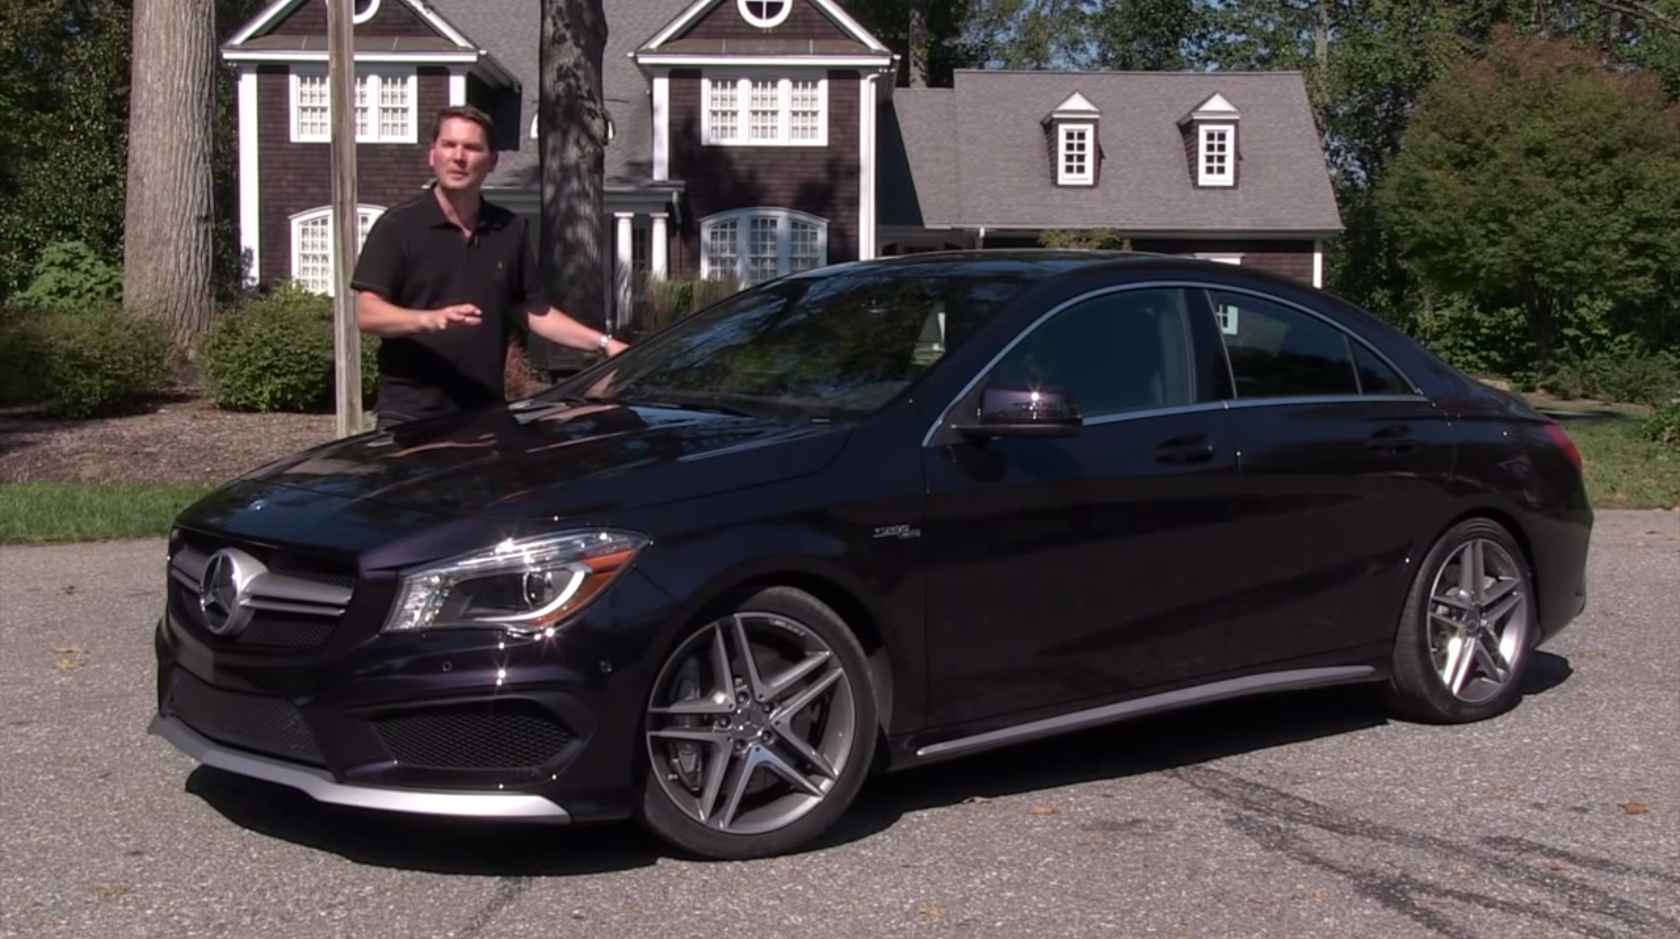 Mercedes Benz Cla 250 And 45 Amg Reviewed By Motormouth